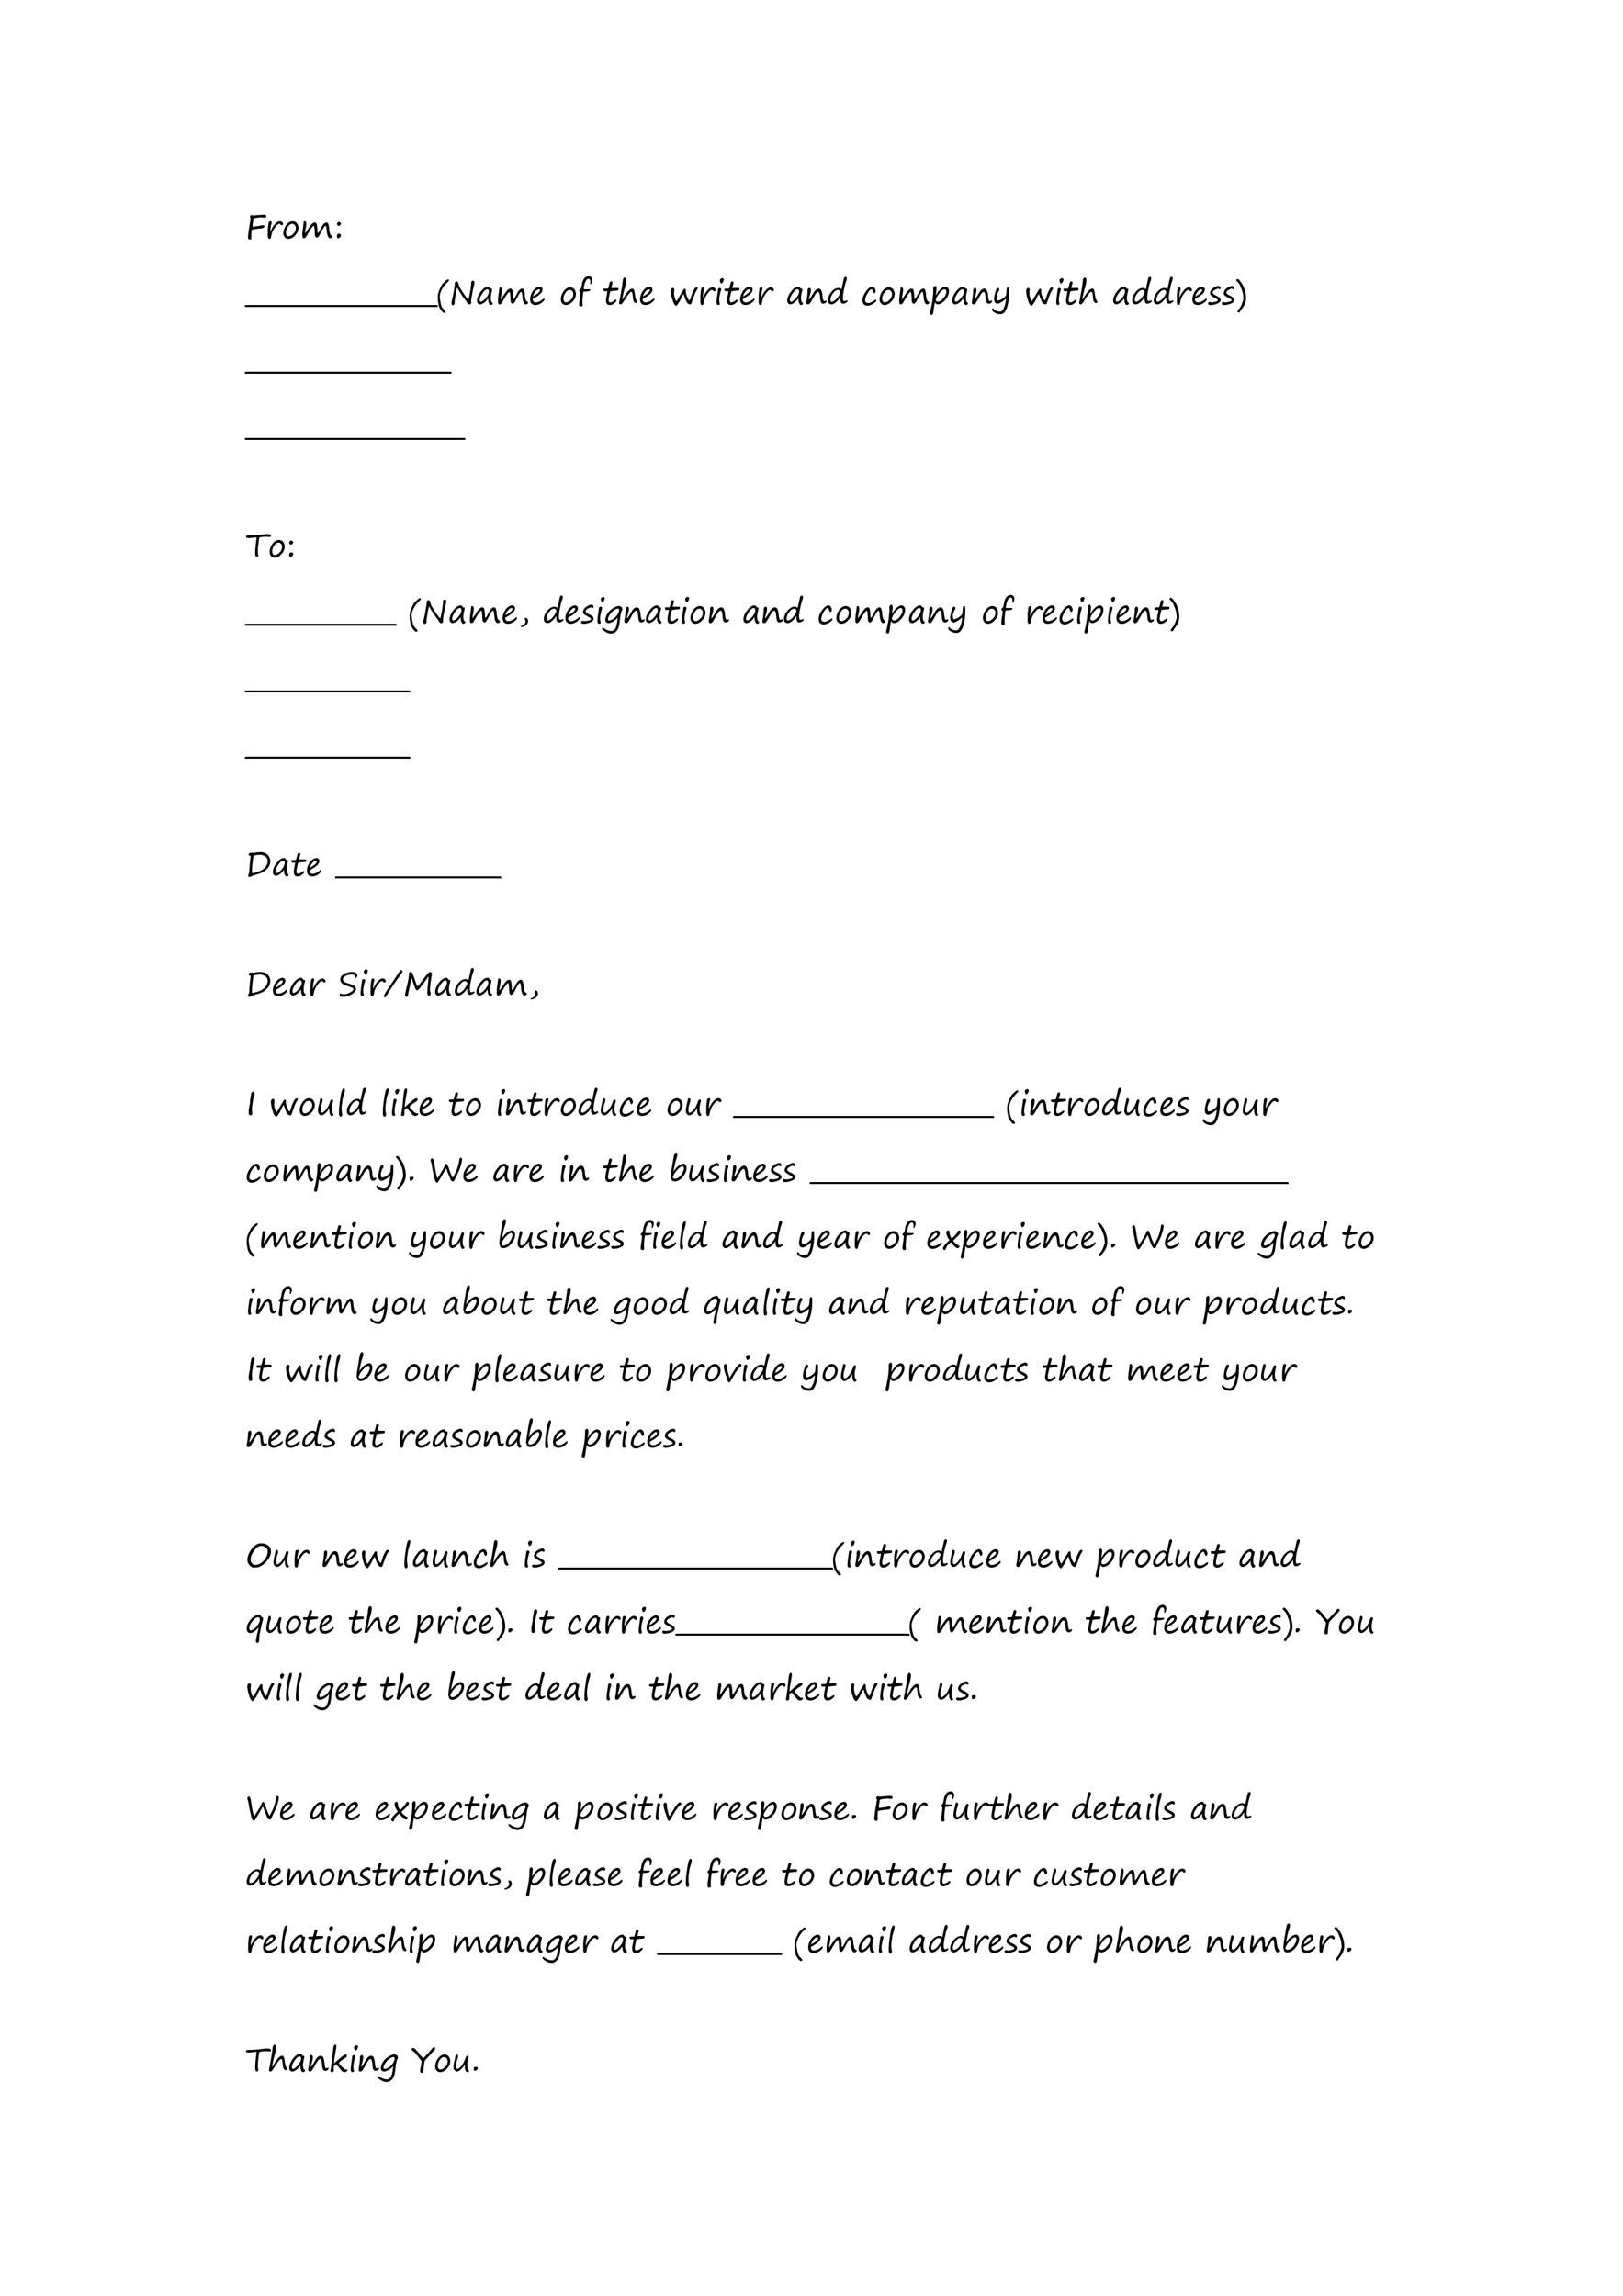 Free sales letter template 01